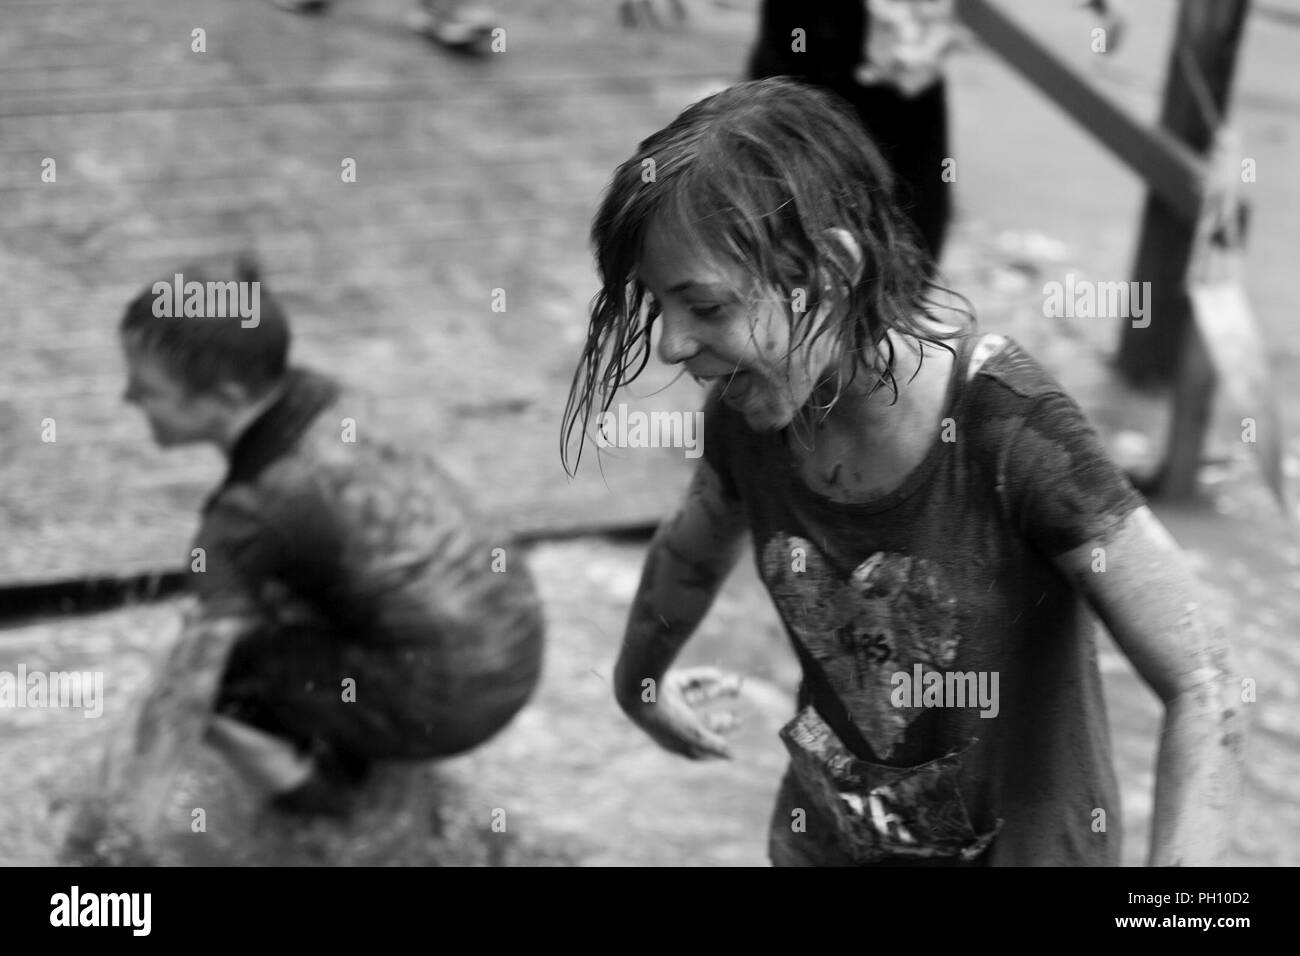 Participants run during the annual Marine Corps Marathon (MCM) Run A Muck race at Marine Corps Base Quantico, Va., June 23, 2018. The Run A Muck is the MCM's messiest mud and obstacle course, consisting of a four mile trail with 21 challenges to include body weight exercises, rope climbs, and mud pits. - Stock Image